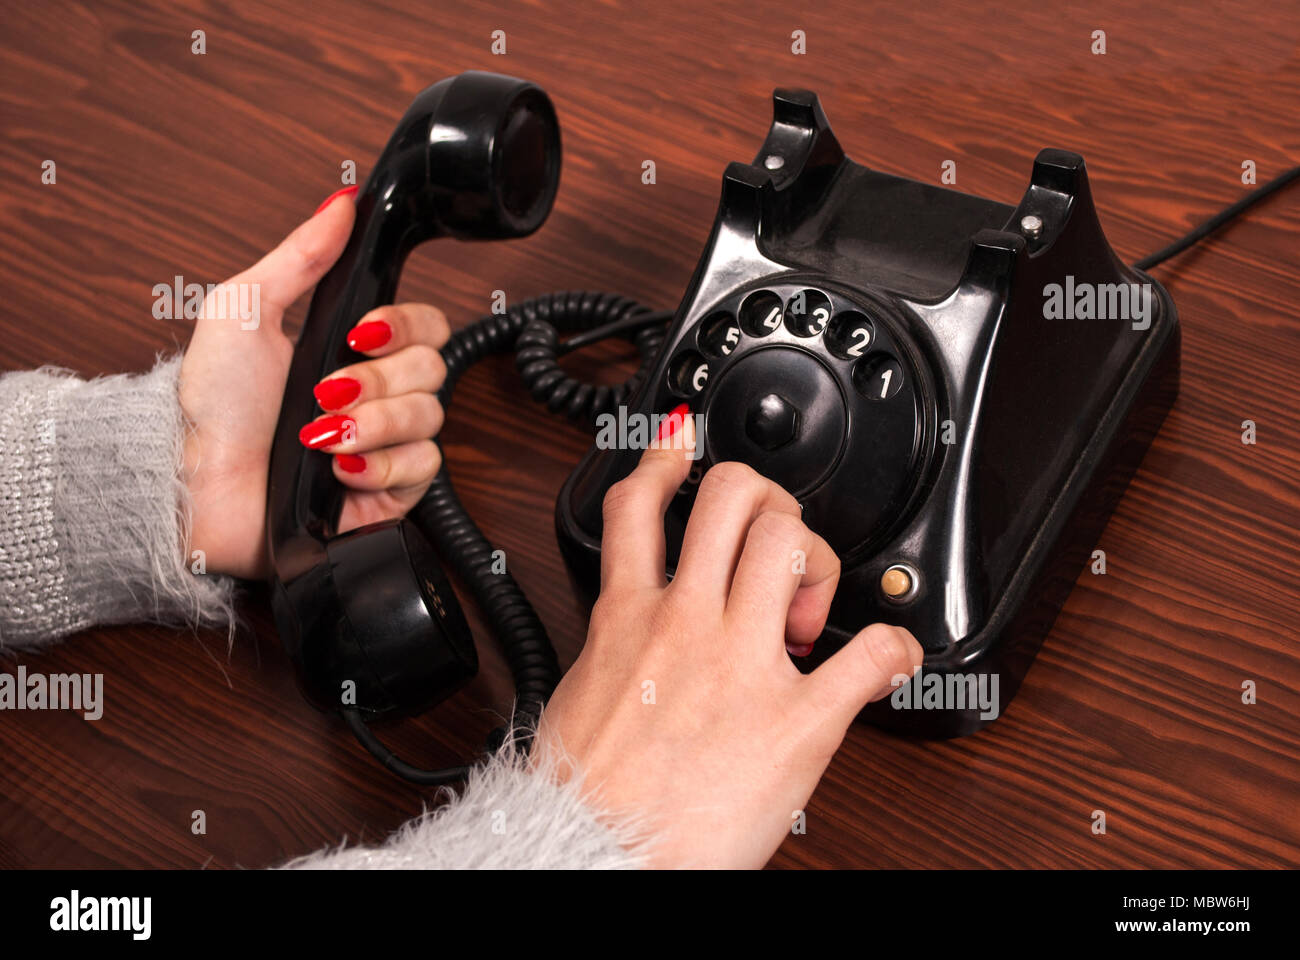 Woman hand and old phone on wooden desk. Finger dial telephone numbers - Stock Image